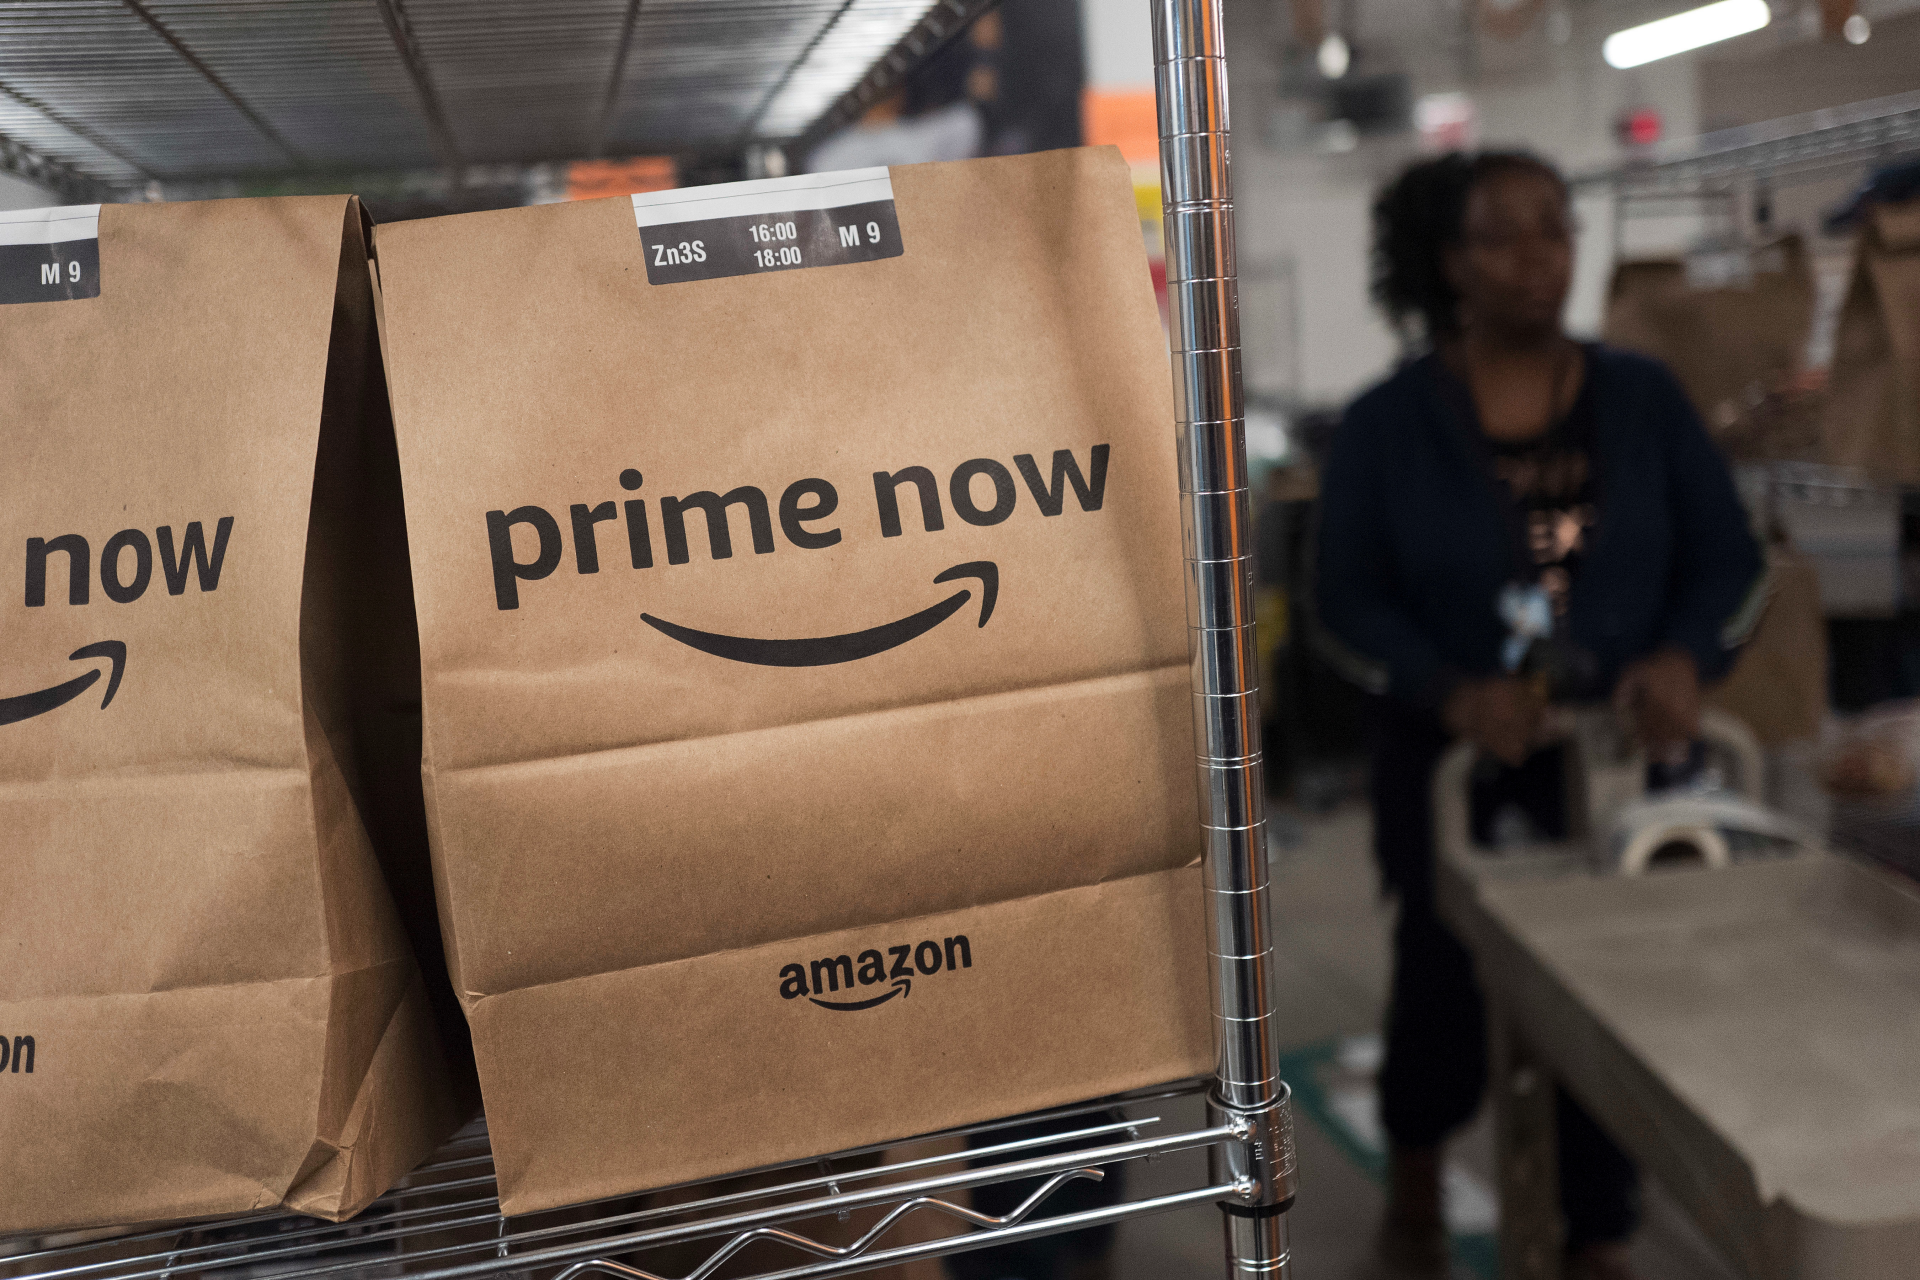 9 great Amazon Prime perks you didn't know about until now